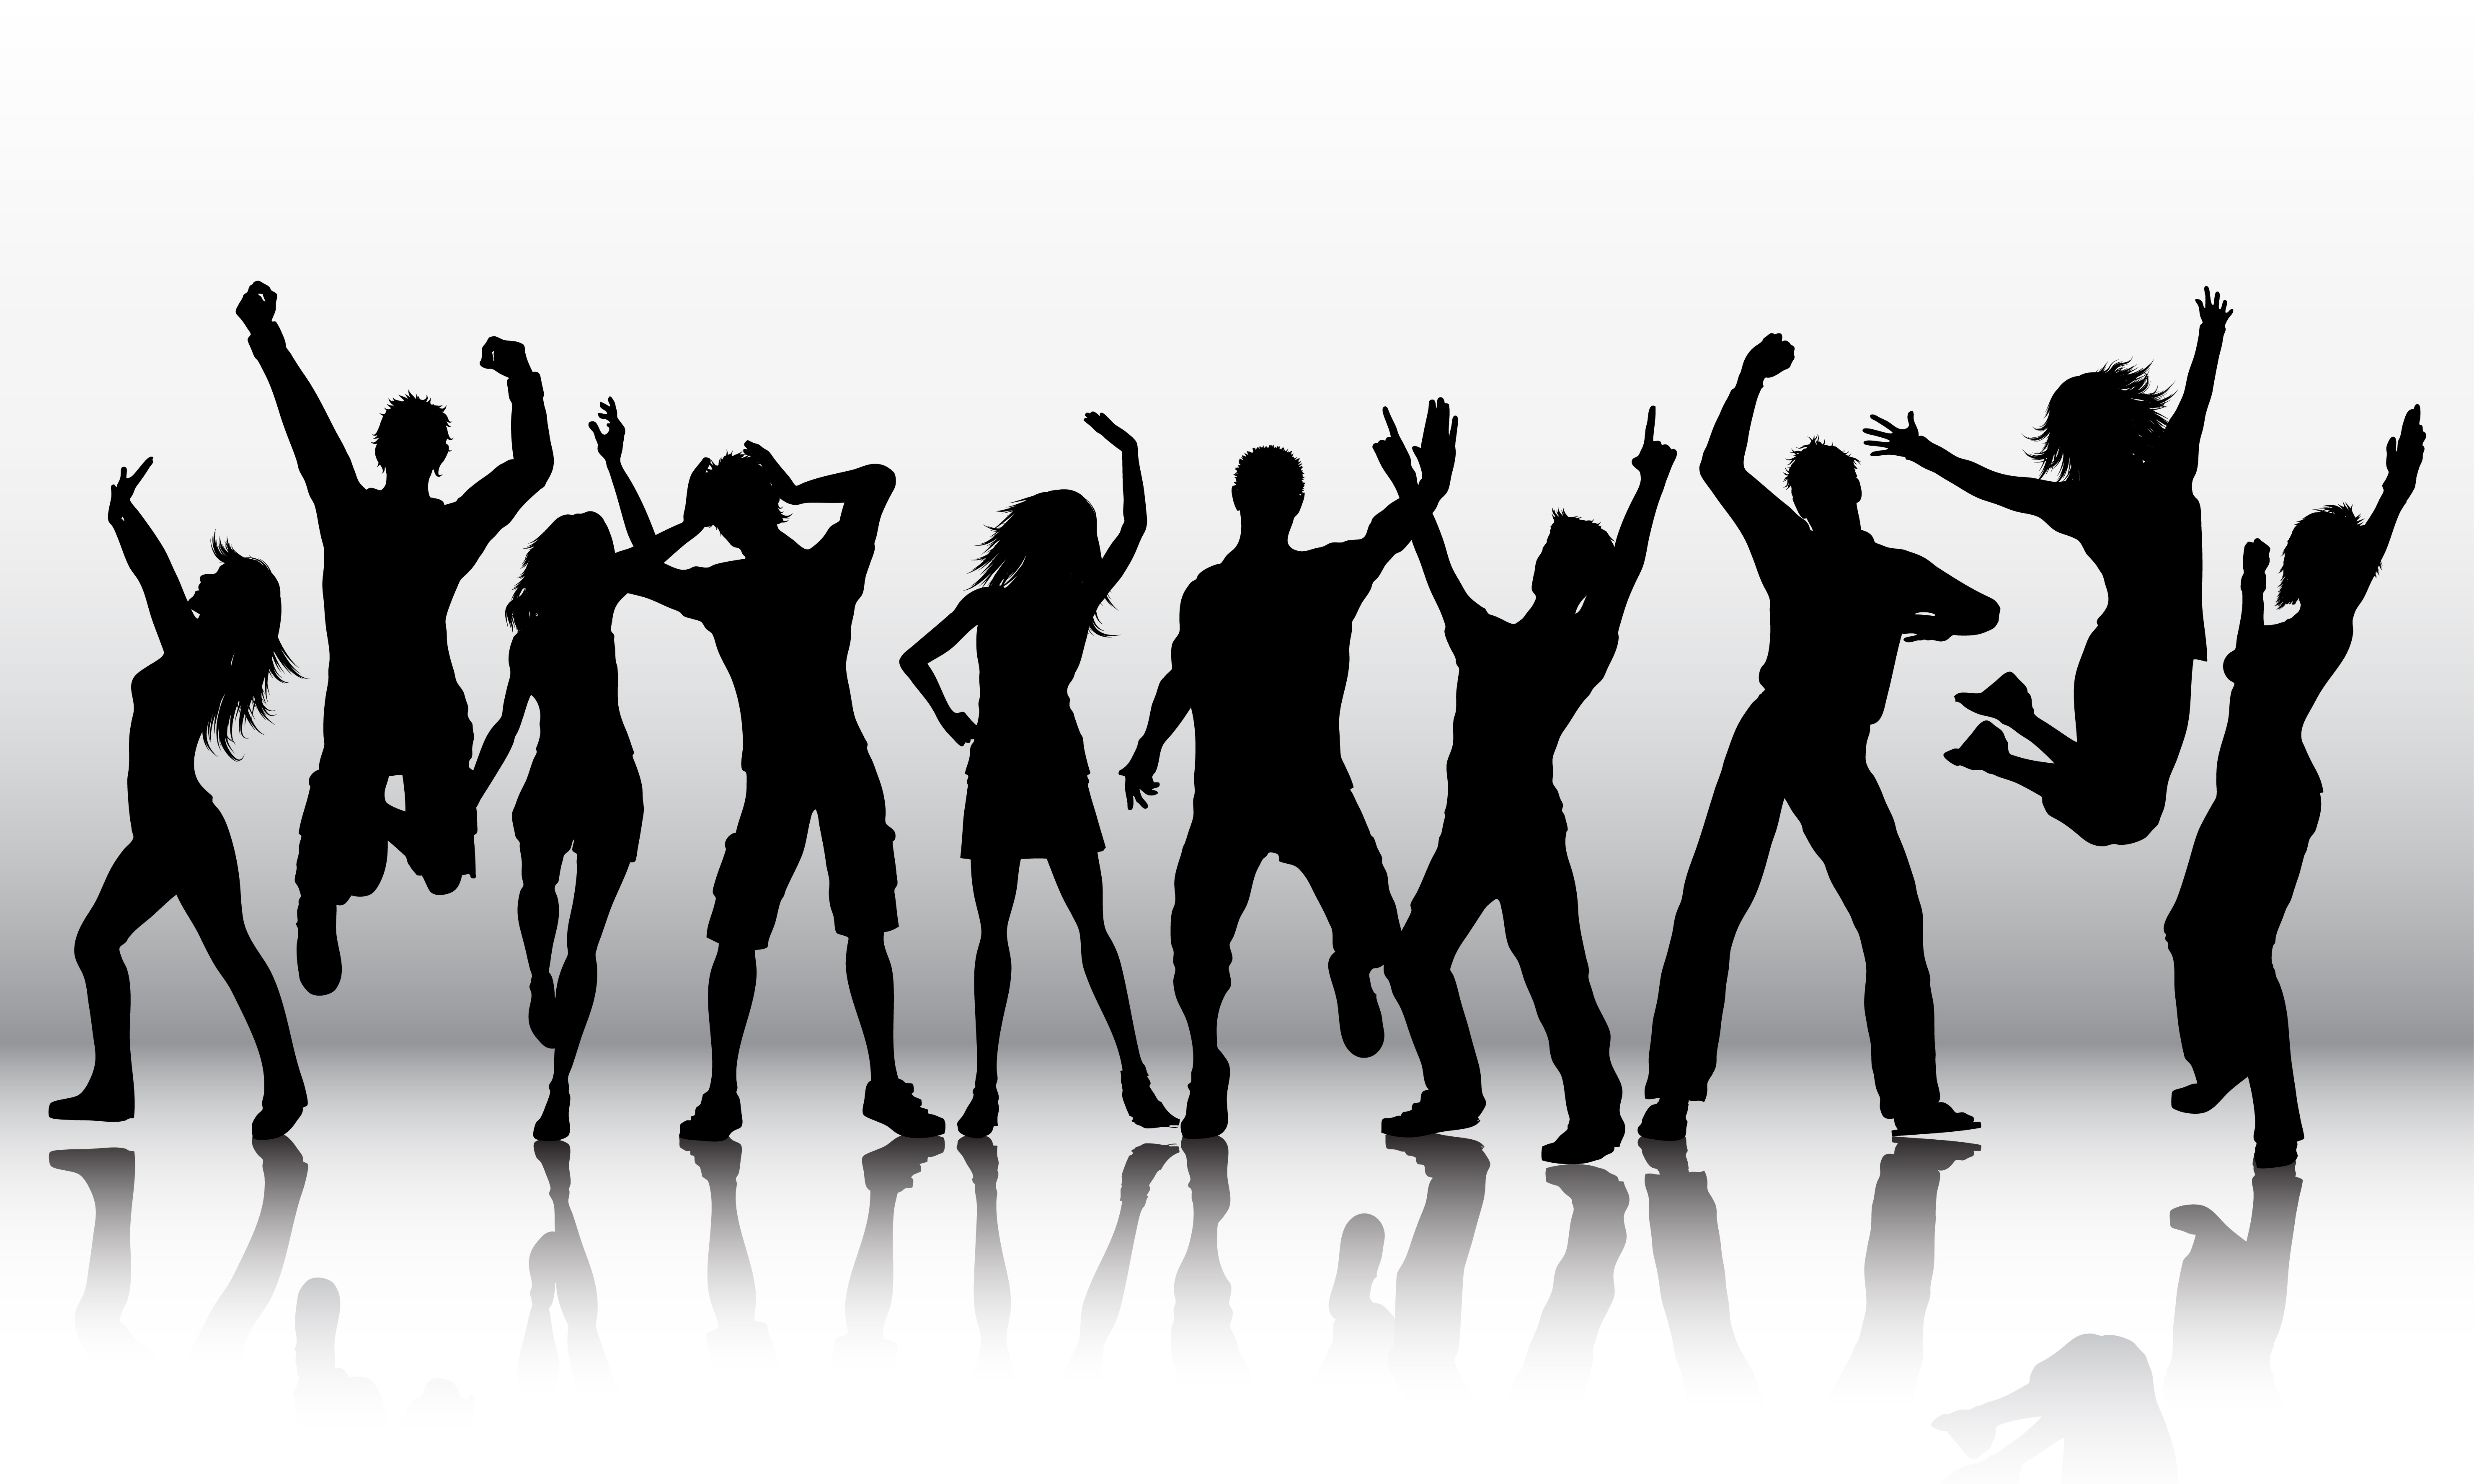 Silhouettes Of People Dancing Download Free Vectors Clipart Graphics Vector Art